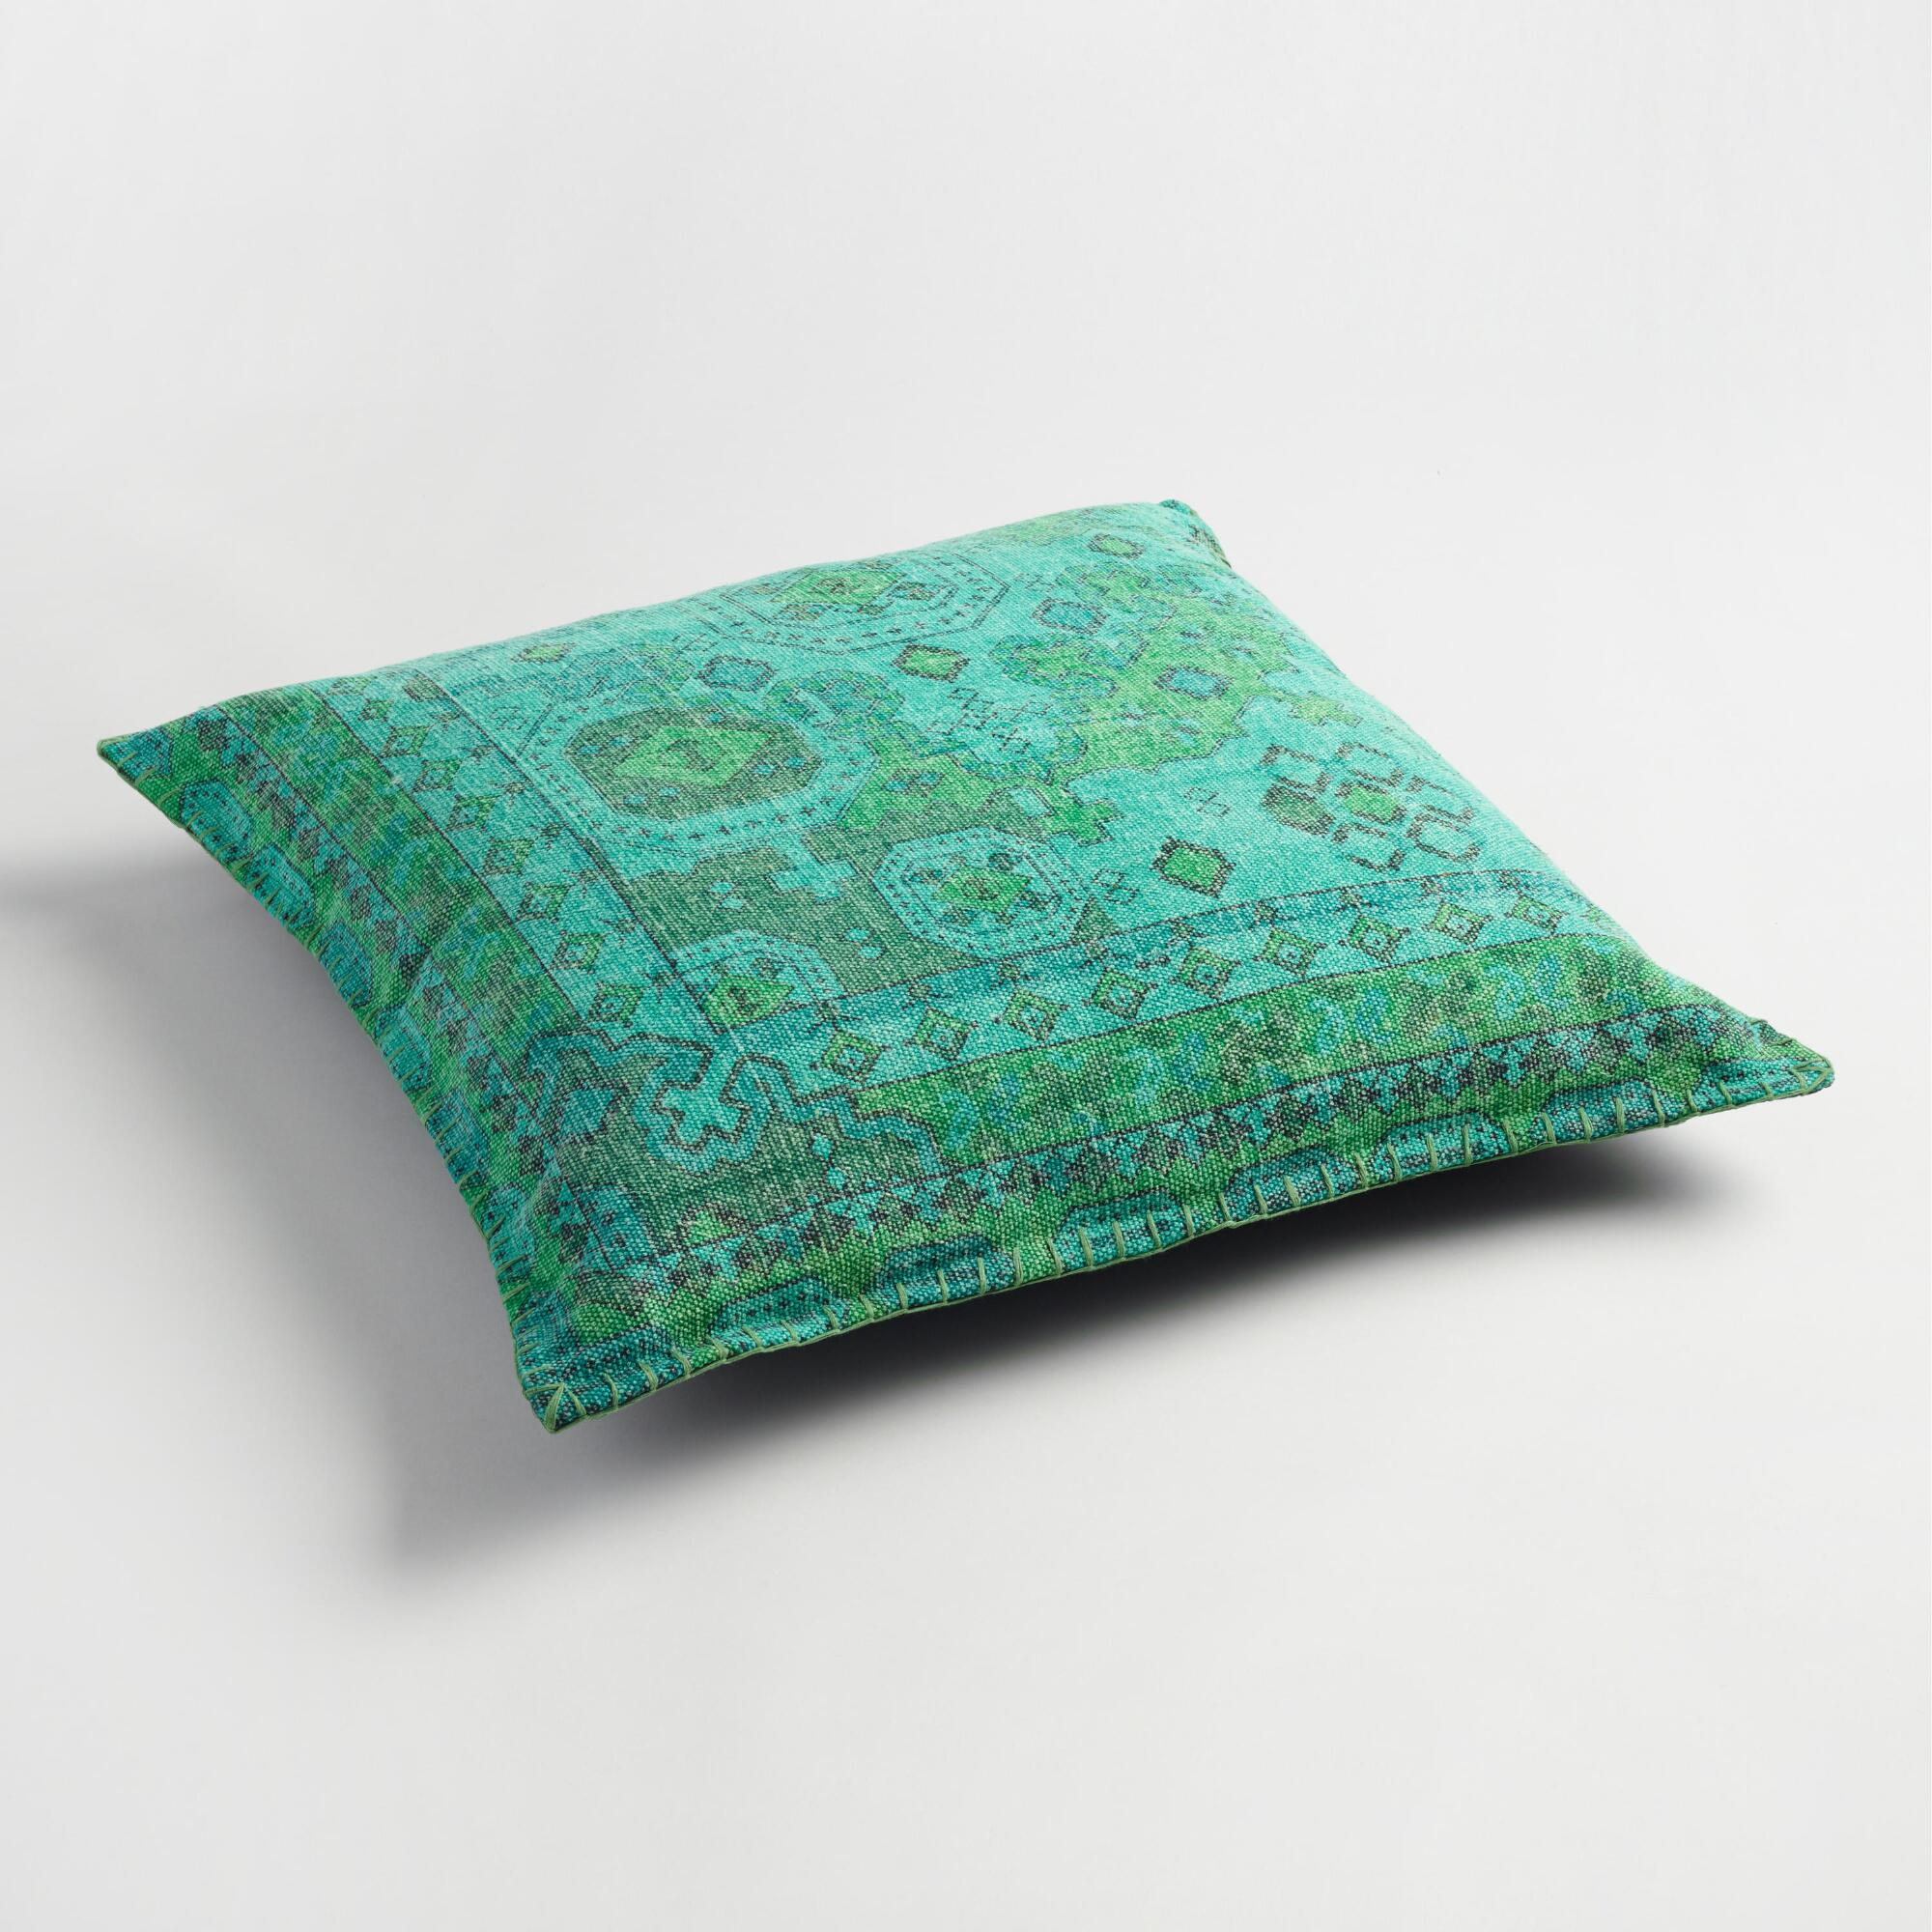 Floor Cushions Or Pillows : Teal Dhurrie Printed Floor Cushion World Market